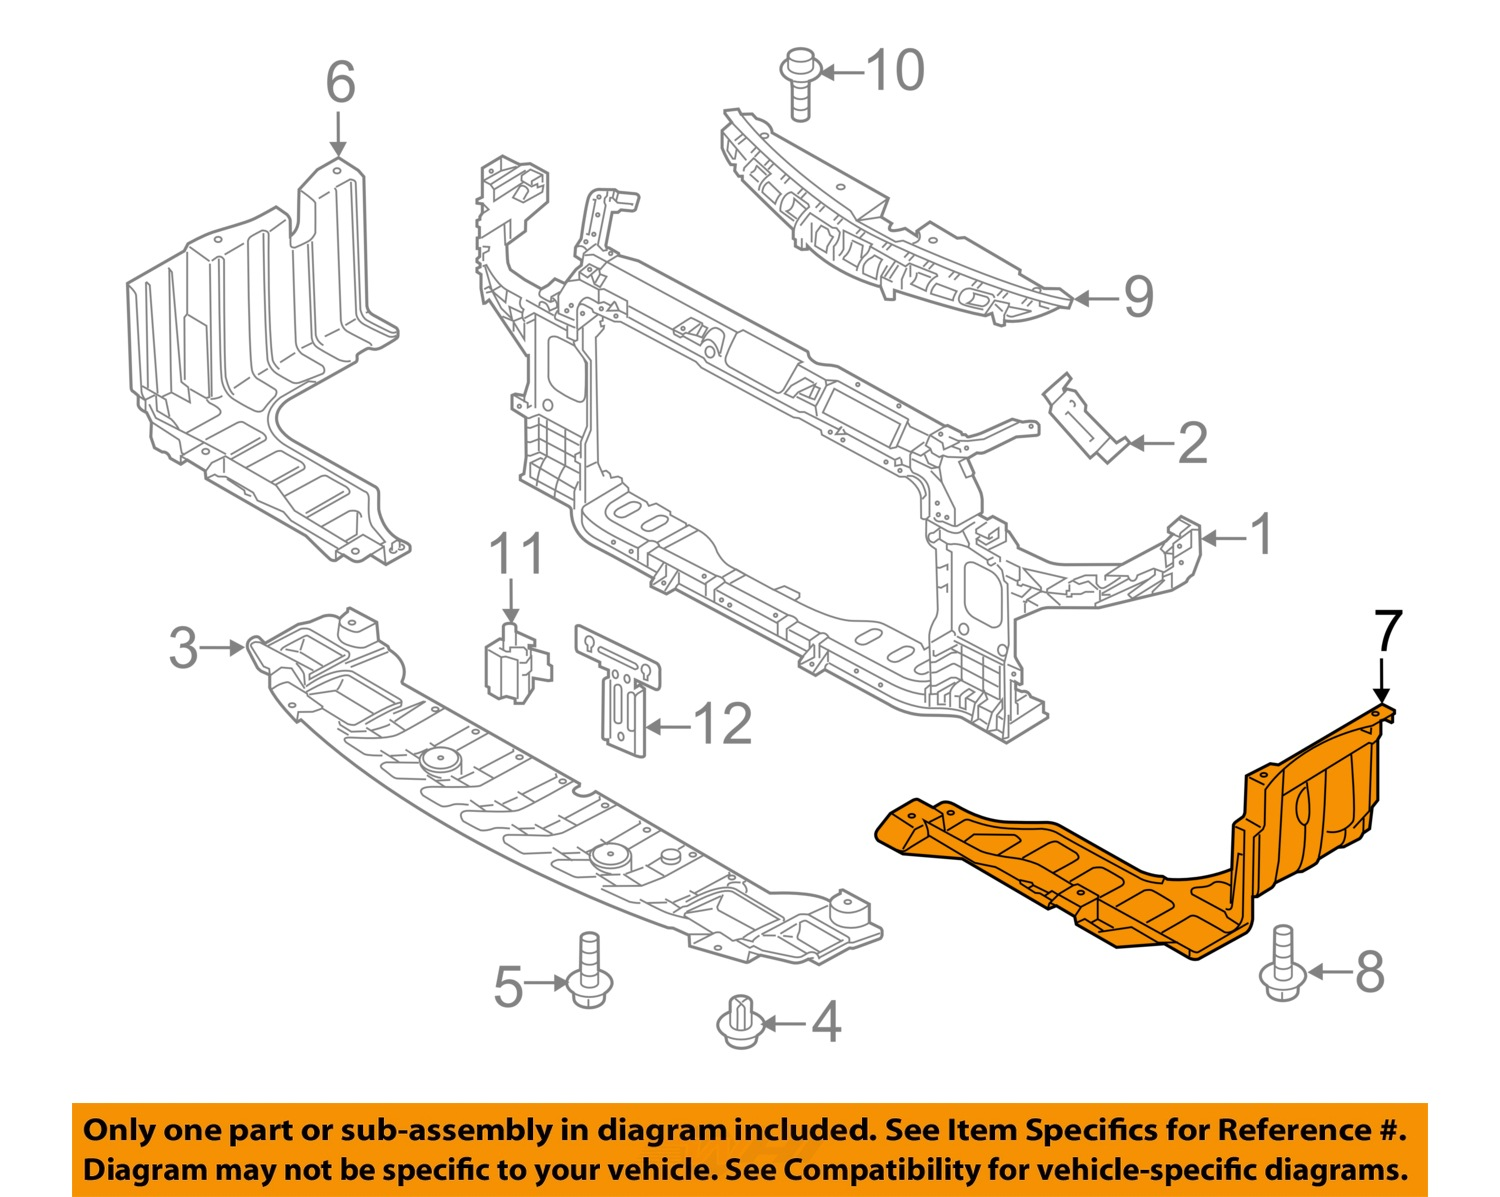 Kia Forte Engine Diagram Intake Manifold For Koup 2012 Oem Under Radiator Splash Shield Cover Left